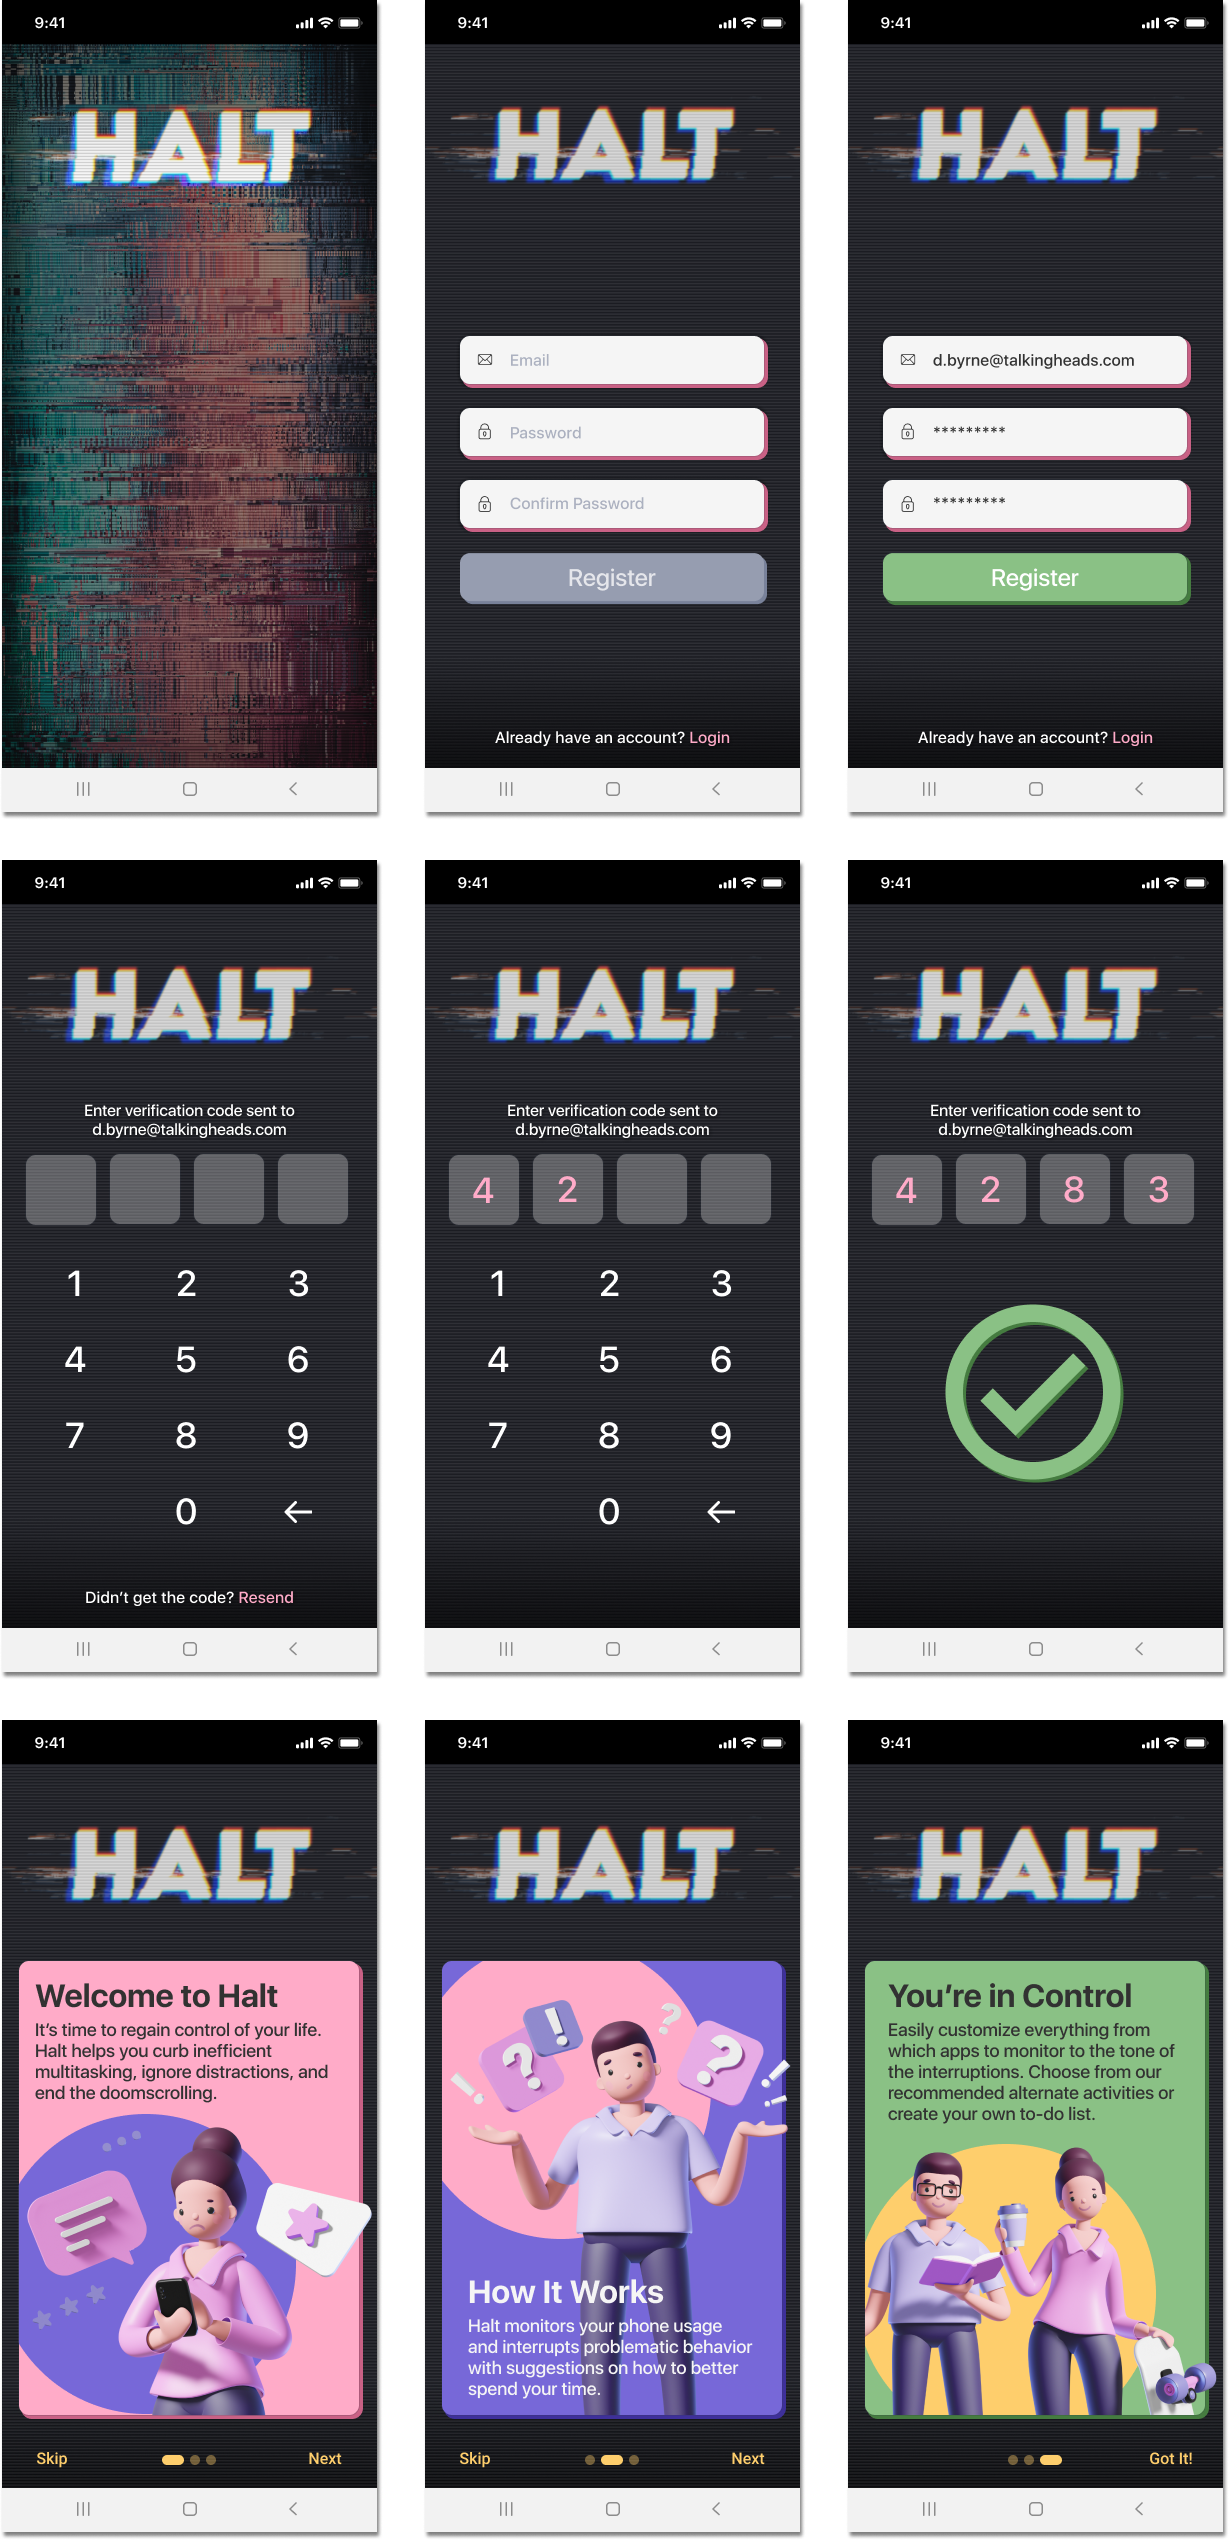 Screenshots of the Halt app